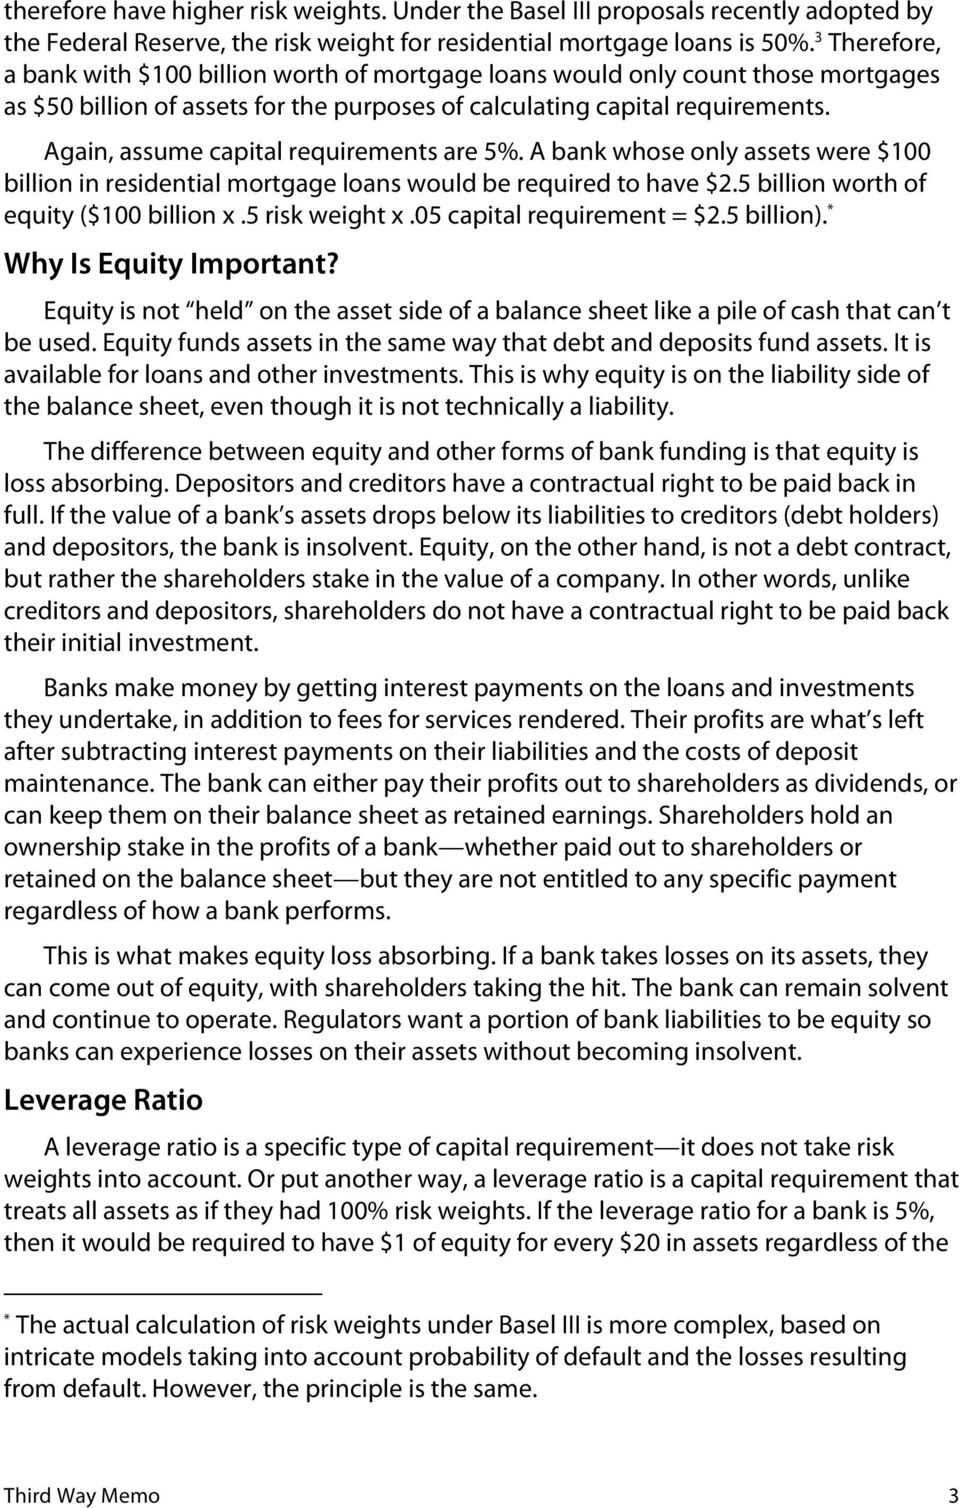 Again, assume capital requirements are 5%. A bank whose only assets were $100 billion in residential mortgage loans would be required to have $2.5 billion worth of equity ($100 billion x.